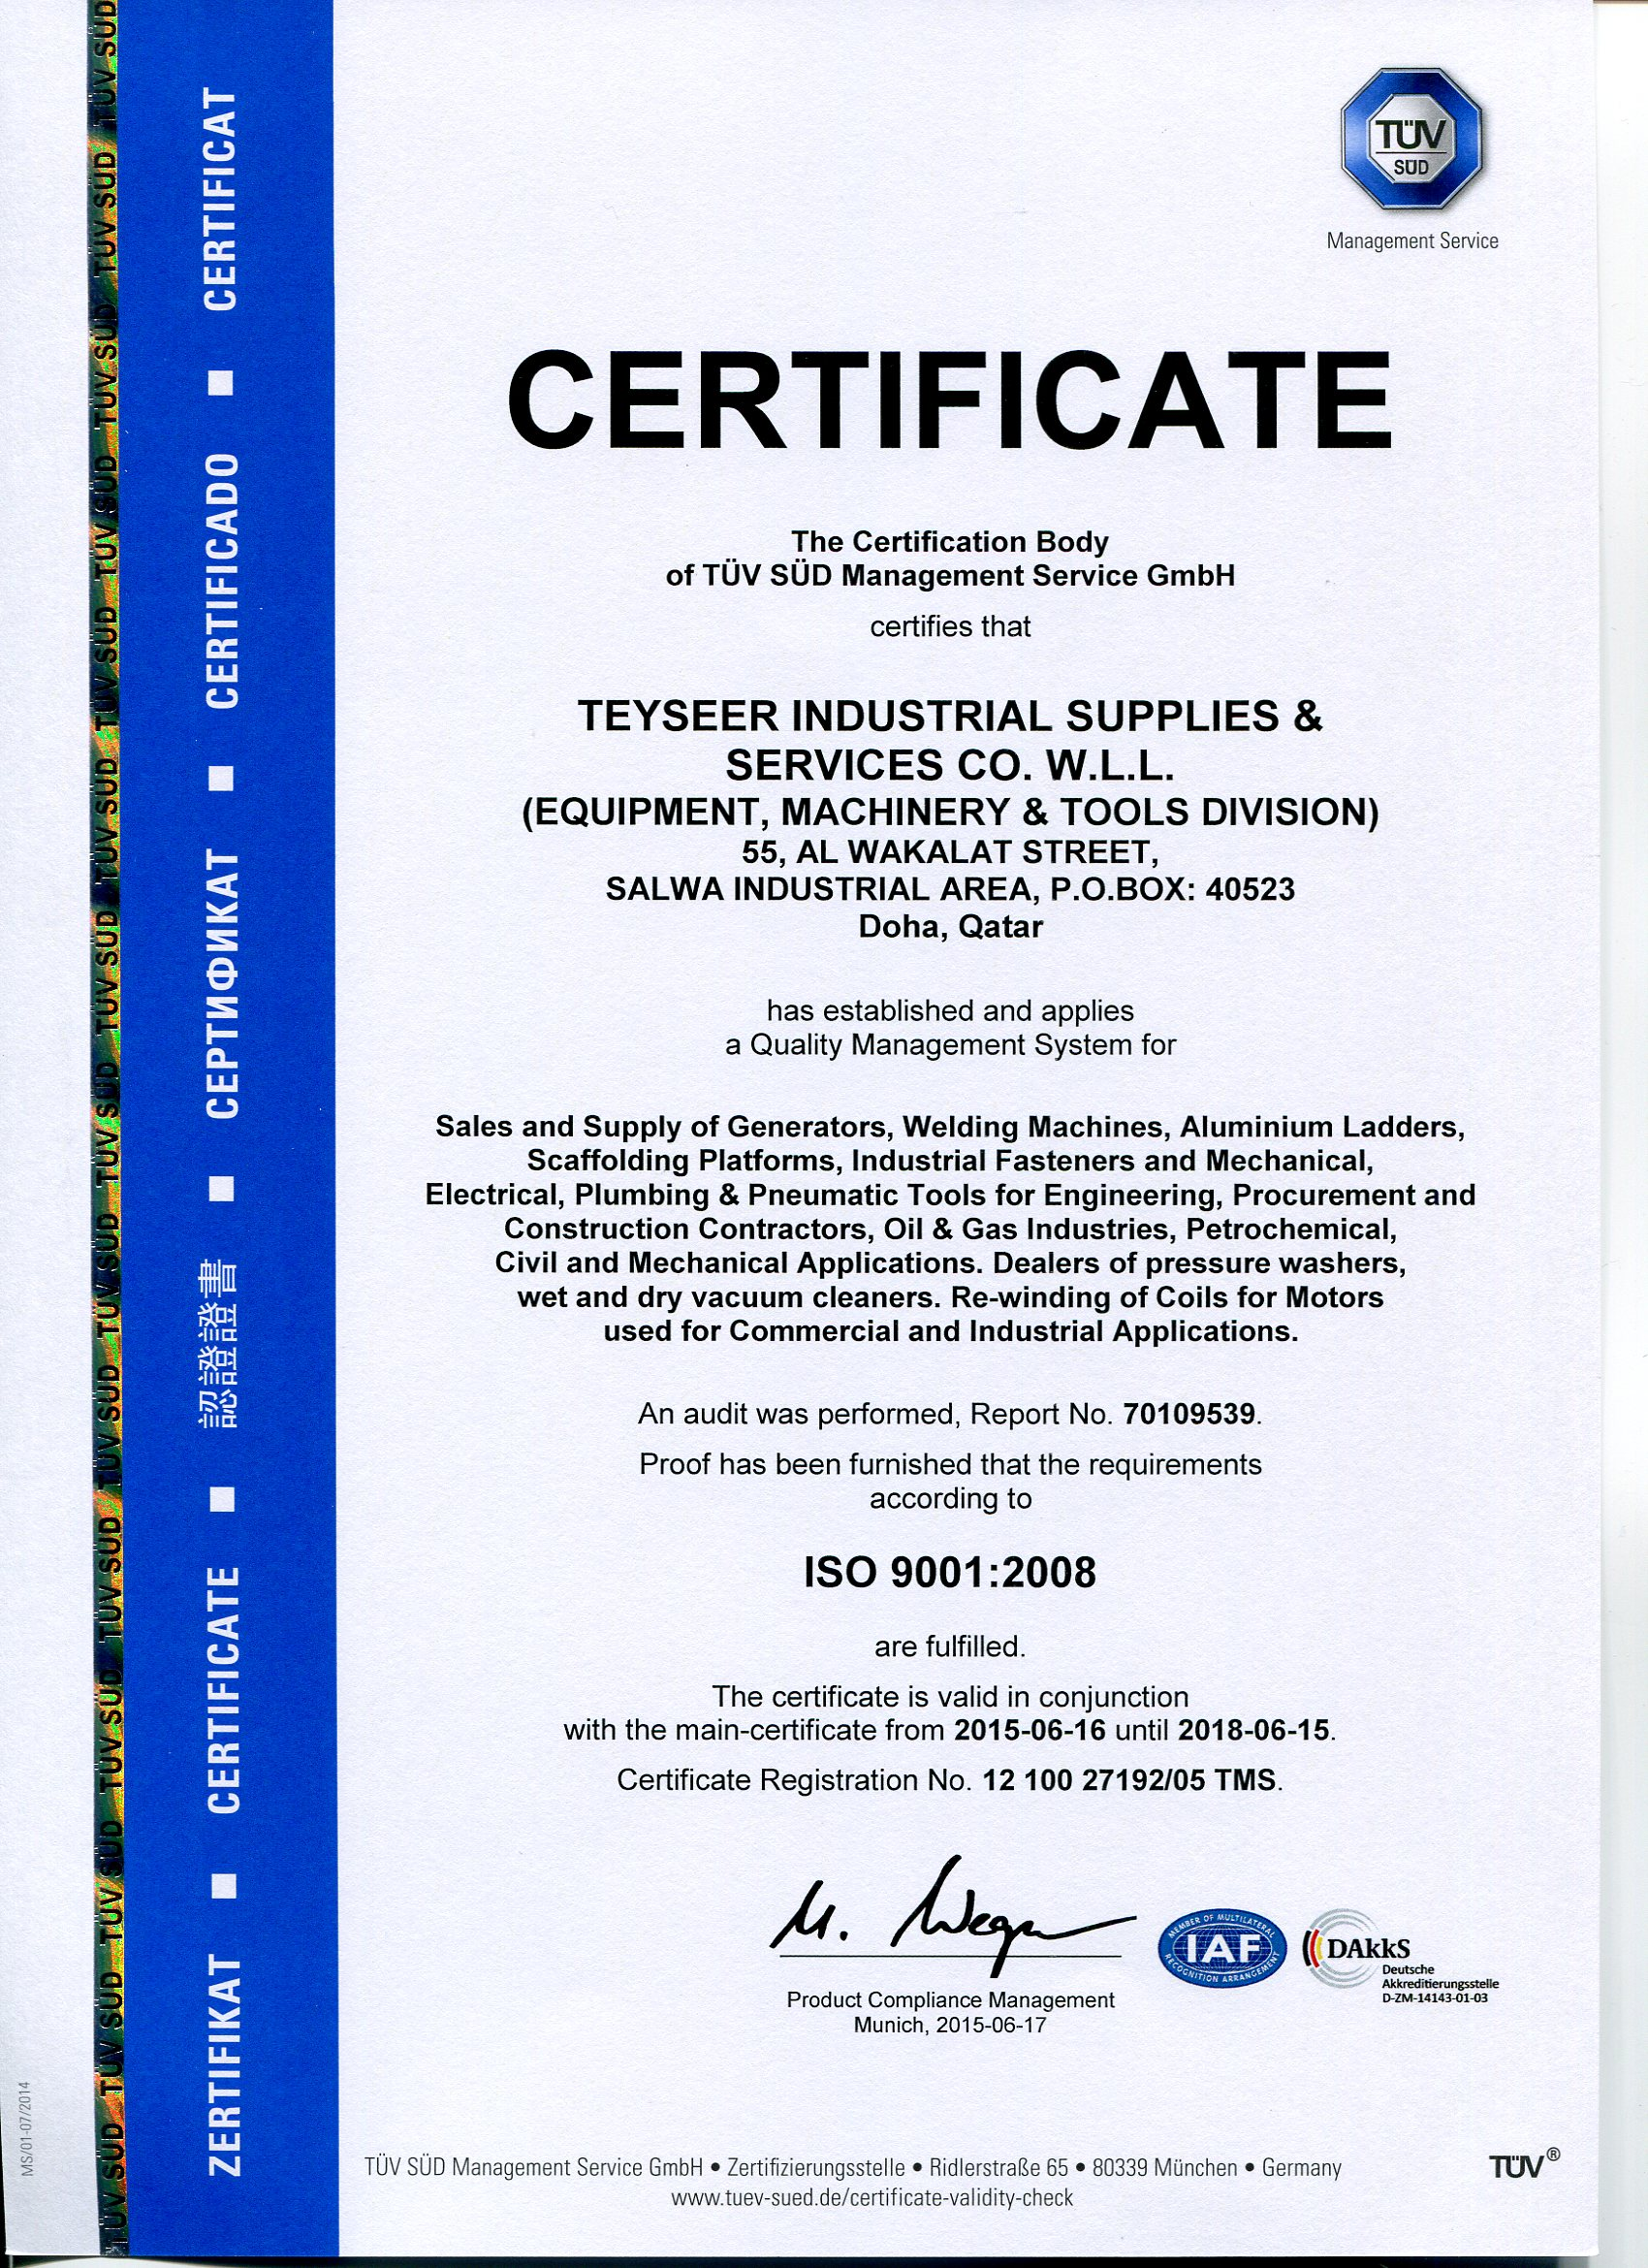 Black Point System In Qatar Teyseer Industrial Supplies Services Co W L L